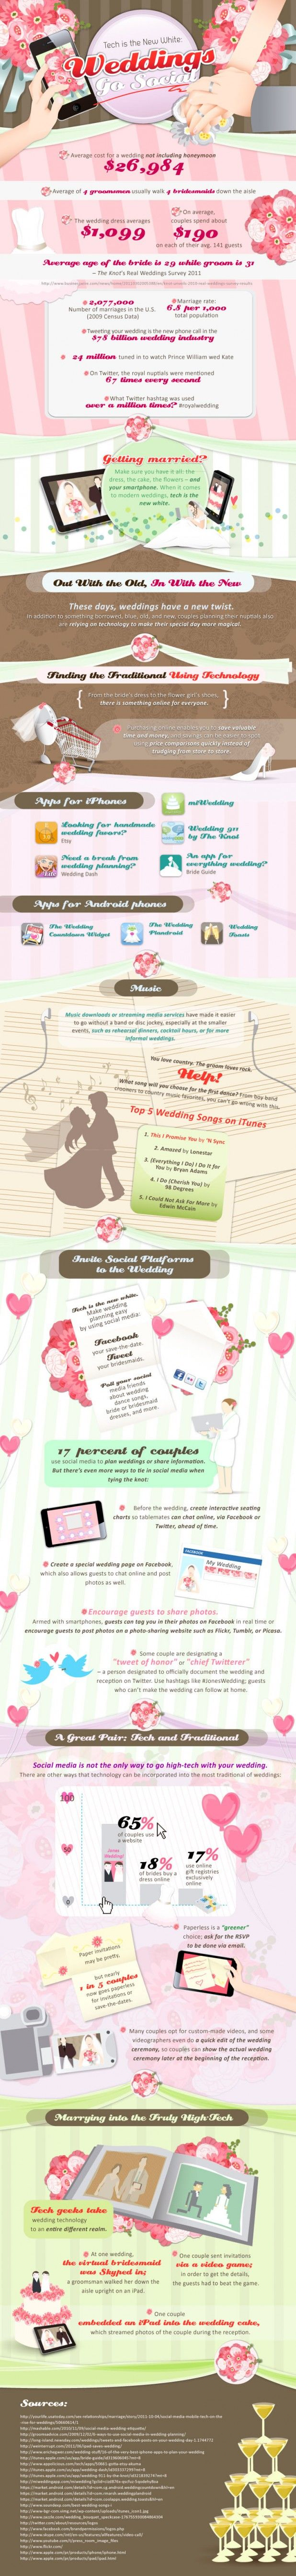 The Best Wedding Infographic Ever